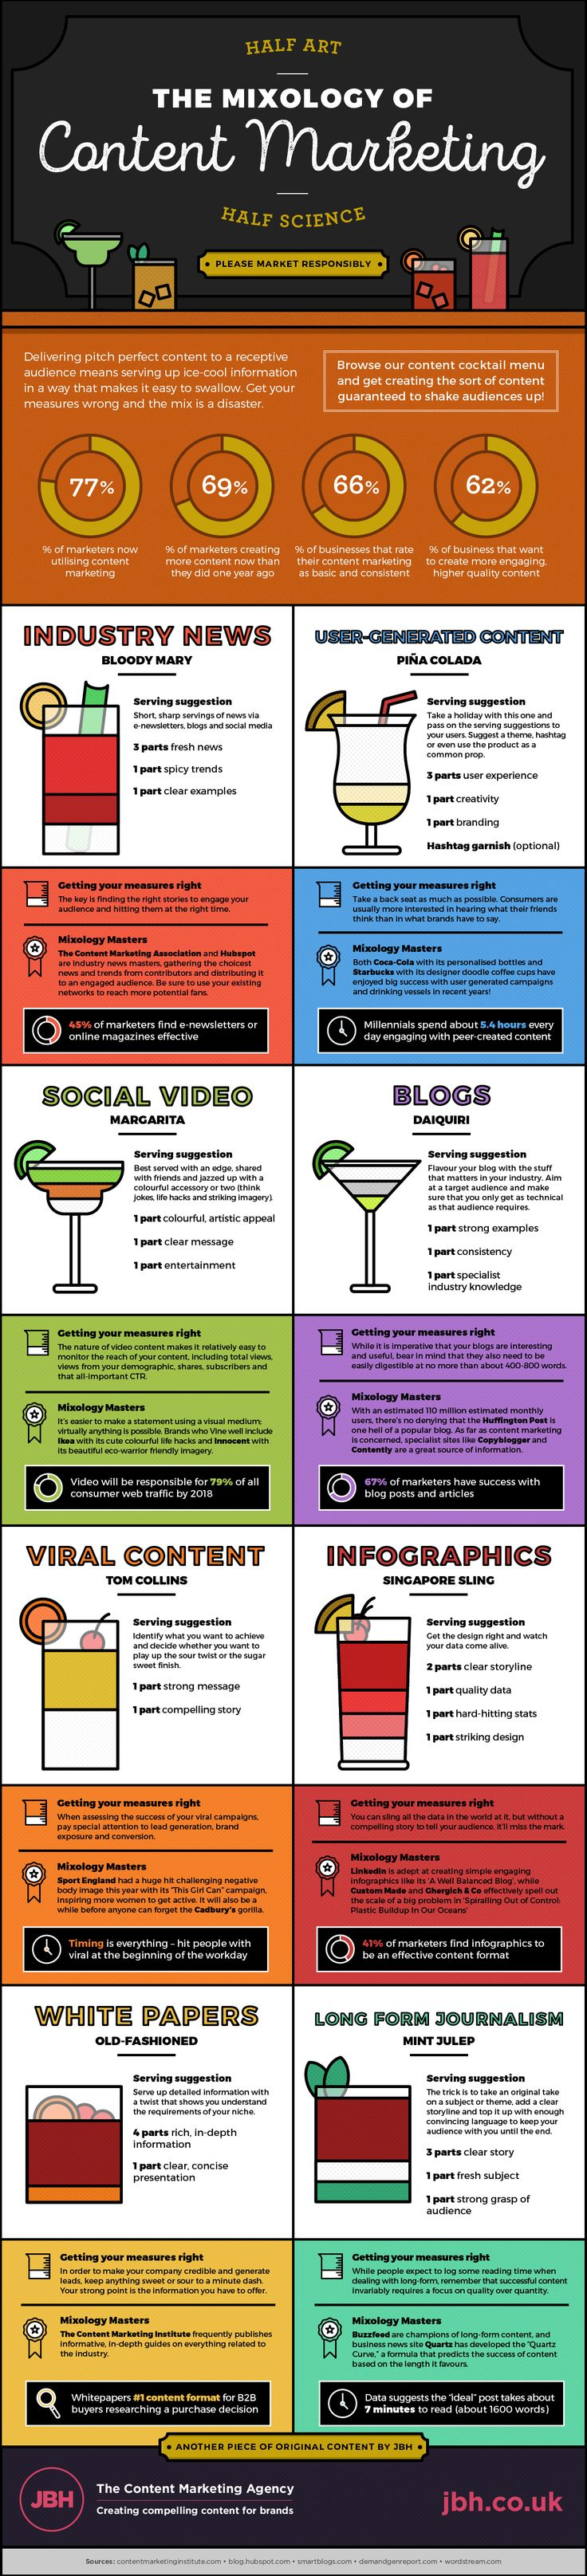 8 Types of Content Your Social Media Followers & Blog Readers Crave